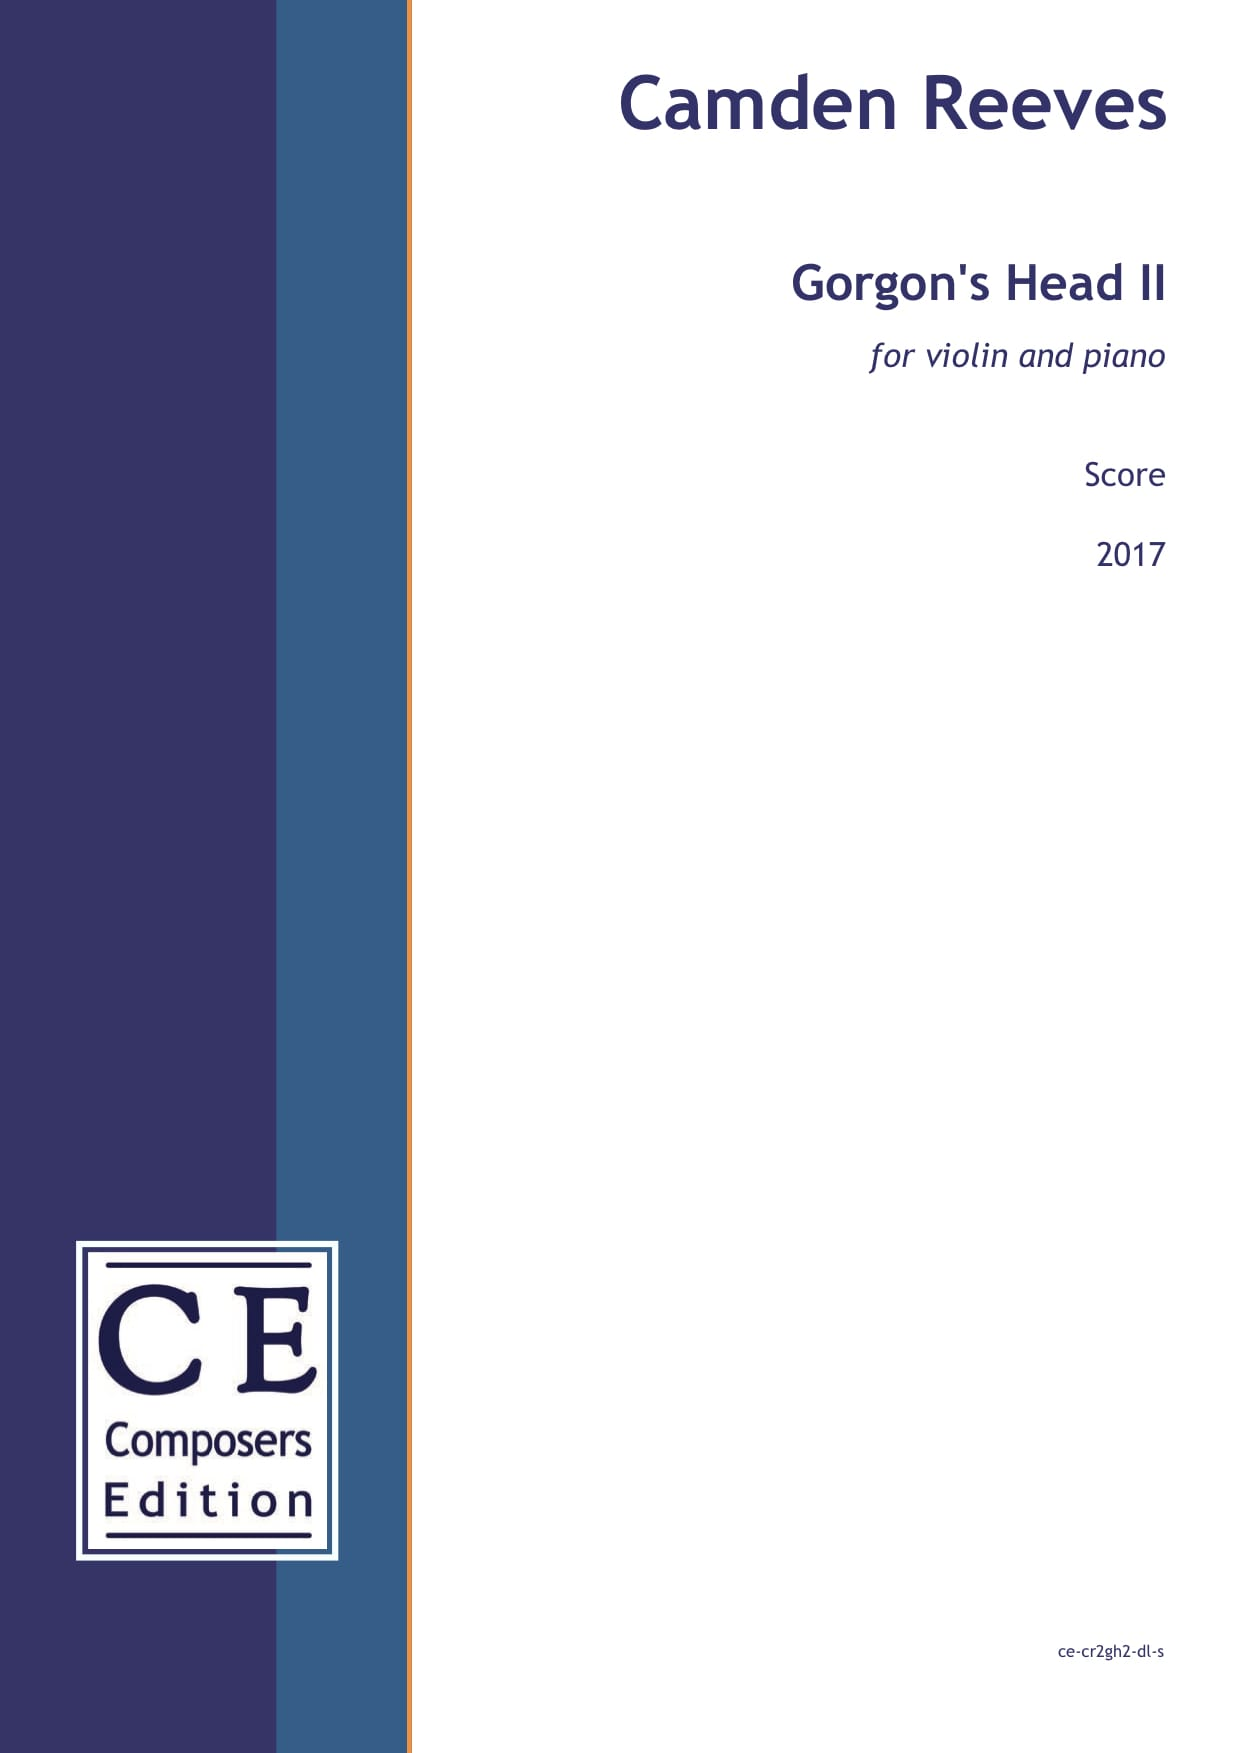 Camden Reeves: Gorgon's Head II for violin and piano